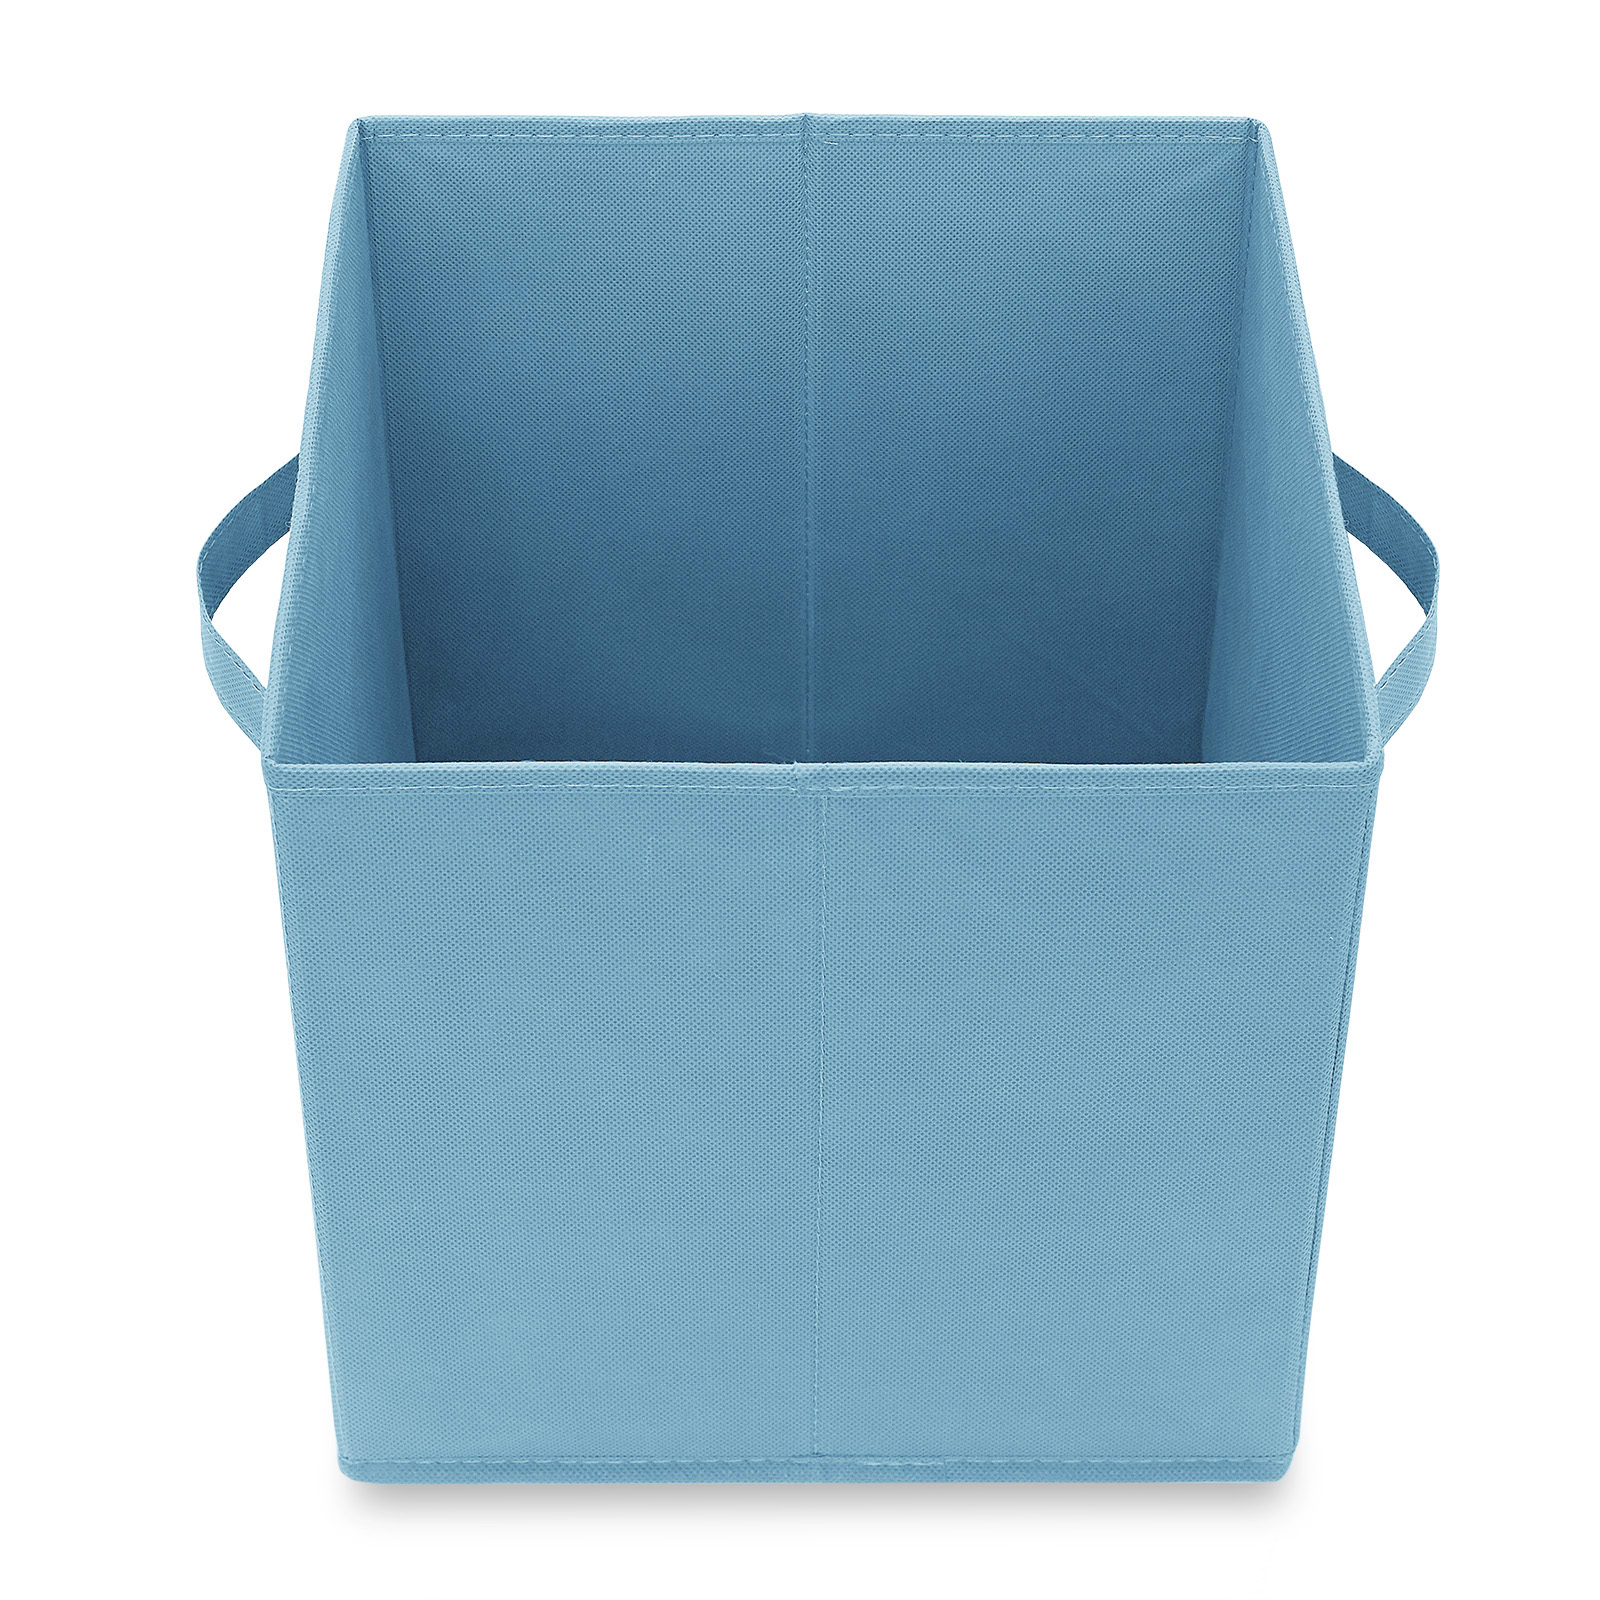 6-Collapsible-Foldable-Cloth-Fabric-Cubby-Cube-Storage-Bins-Baskets-for-Shelves thumbnail 5